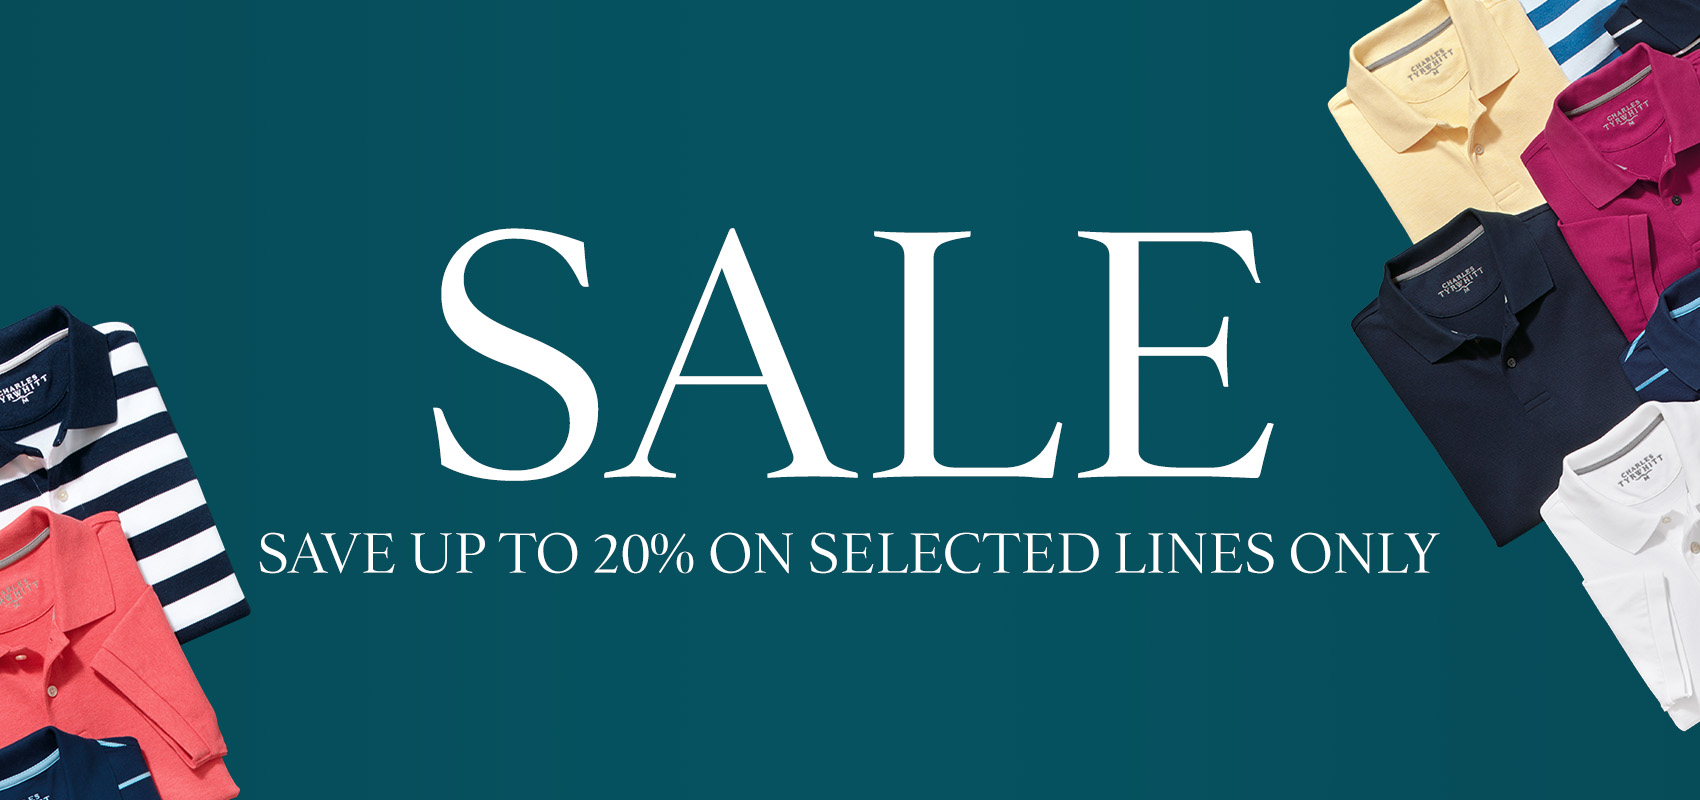 Charles Tyrwhitt casualwear mid season sale - save up to 20% on selected lines